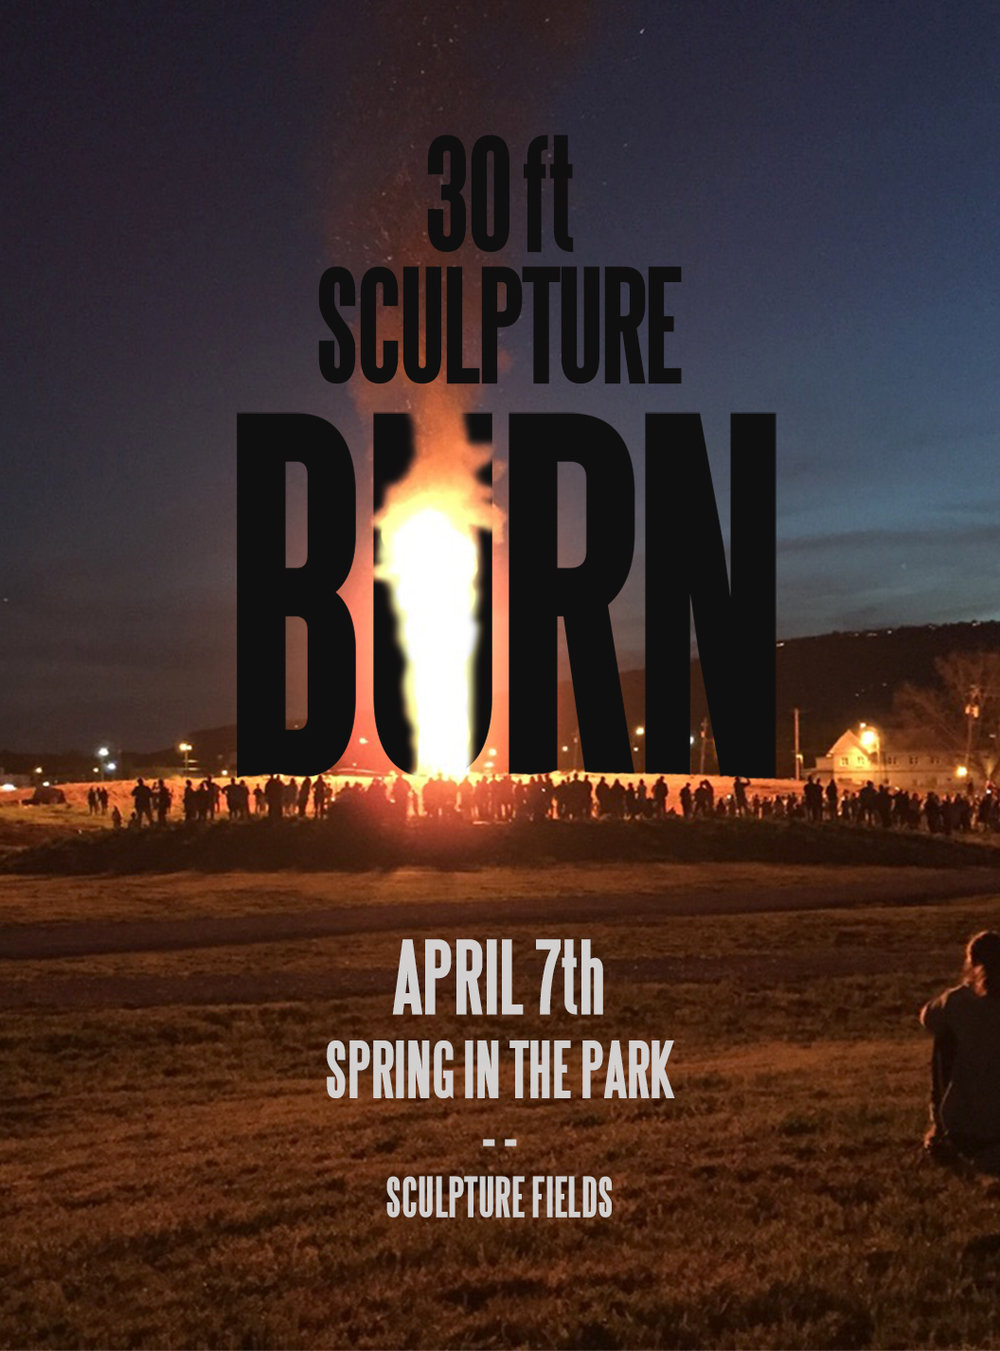 SCULPTURE_FIELDS_SPRING_IN_THE_PARK_BURN_FB.jpg